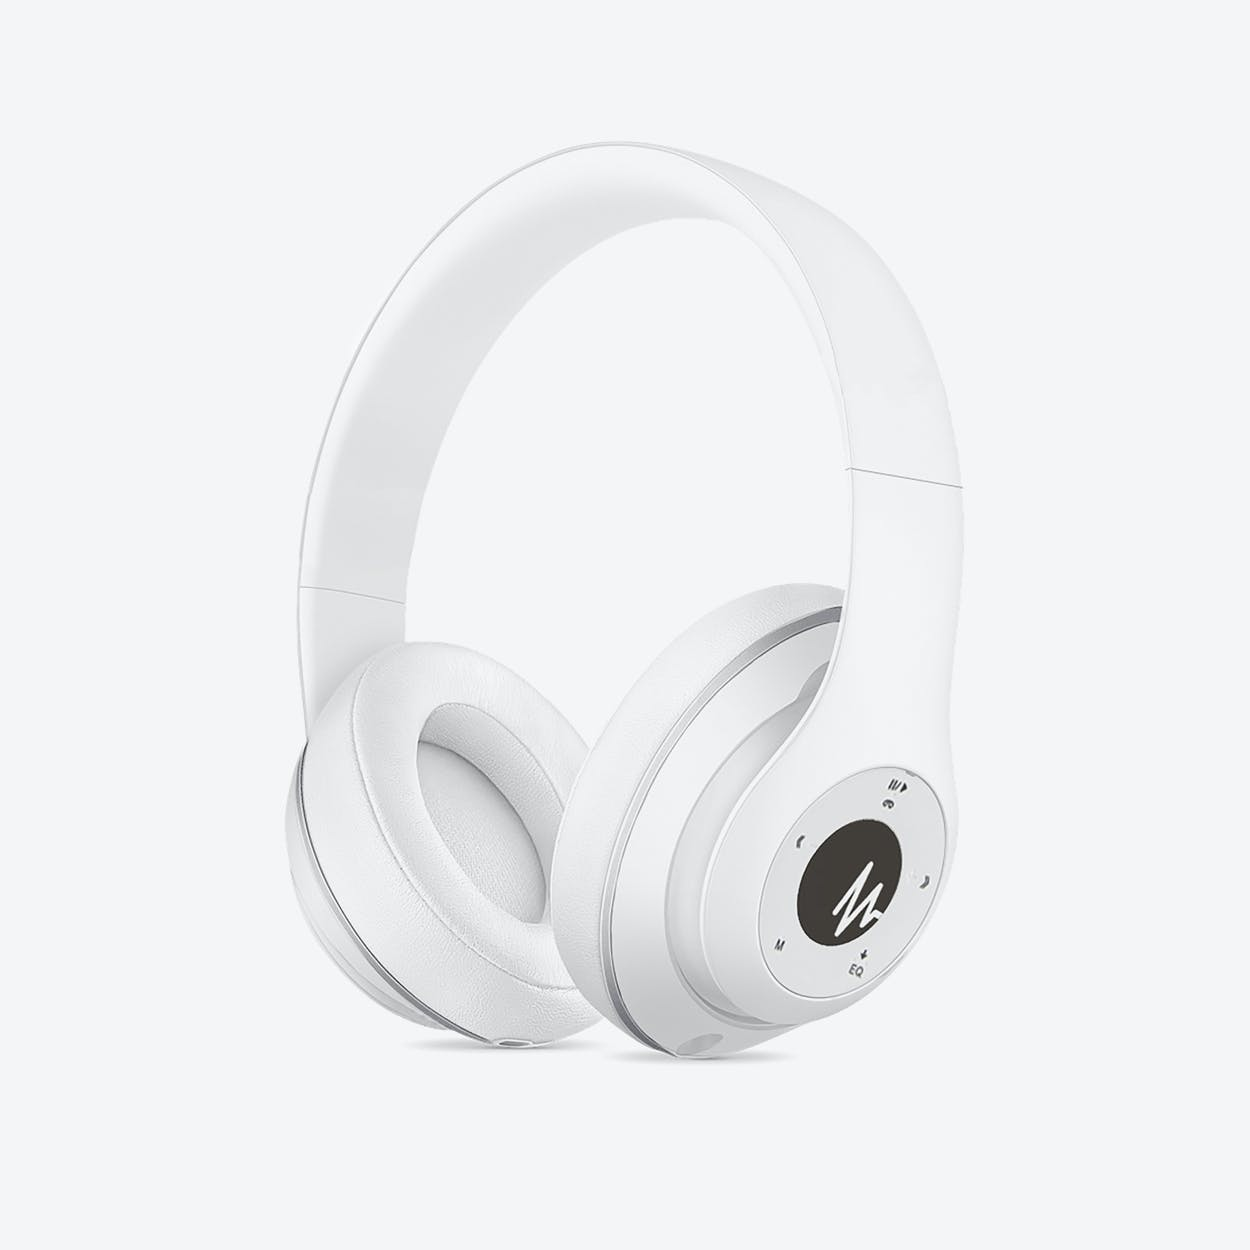 MAGNUSSEN H1 Headphones in Matte White